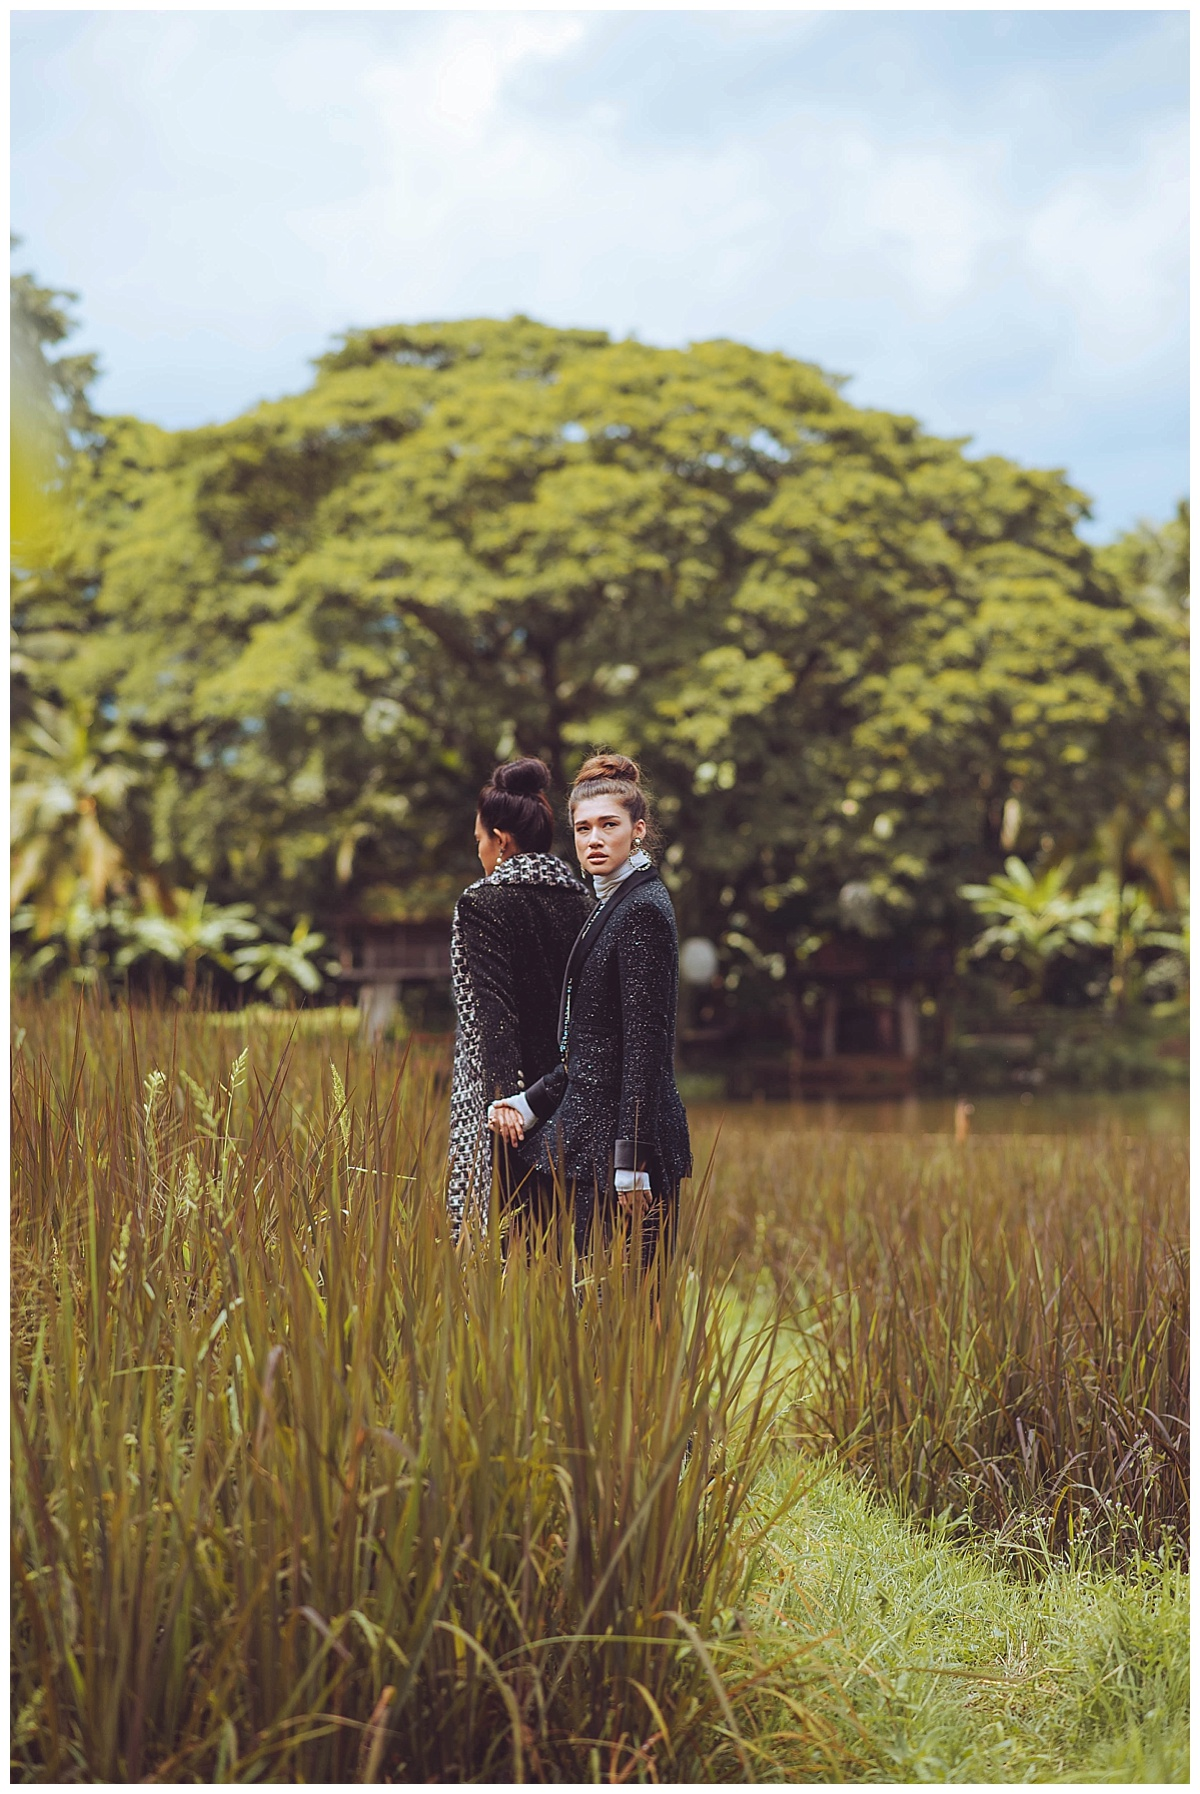 Harpers Bazaar Thailand Fashion Editorial Photography Chanel 2019 Wardrobe